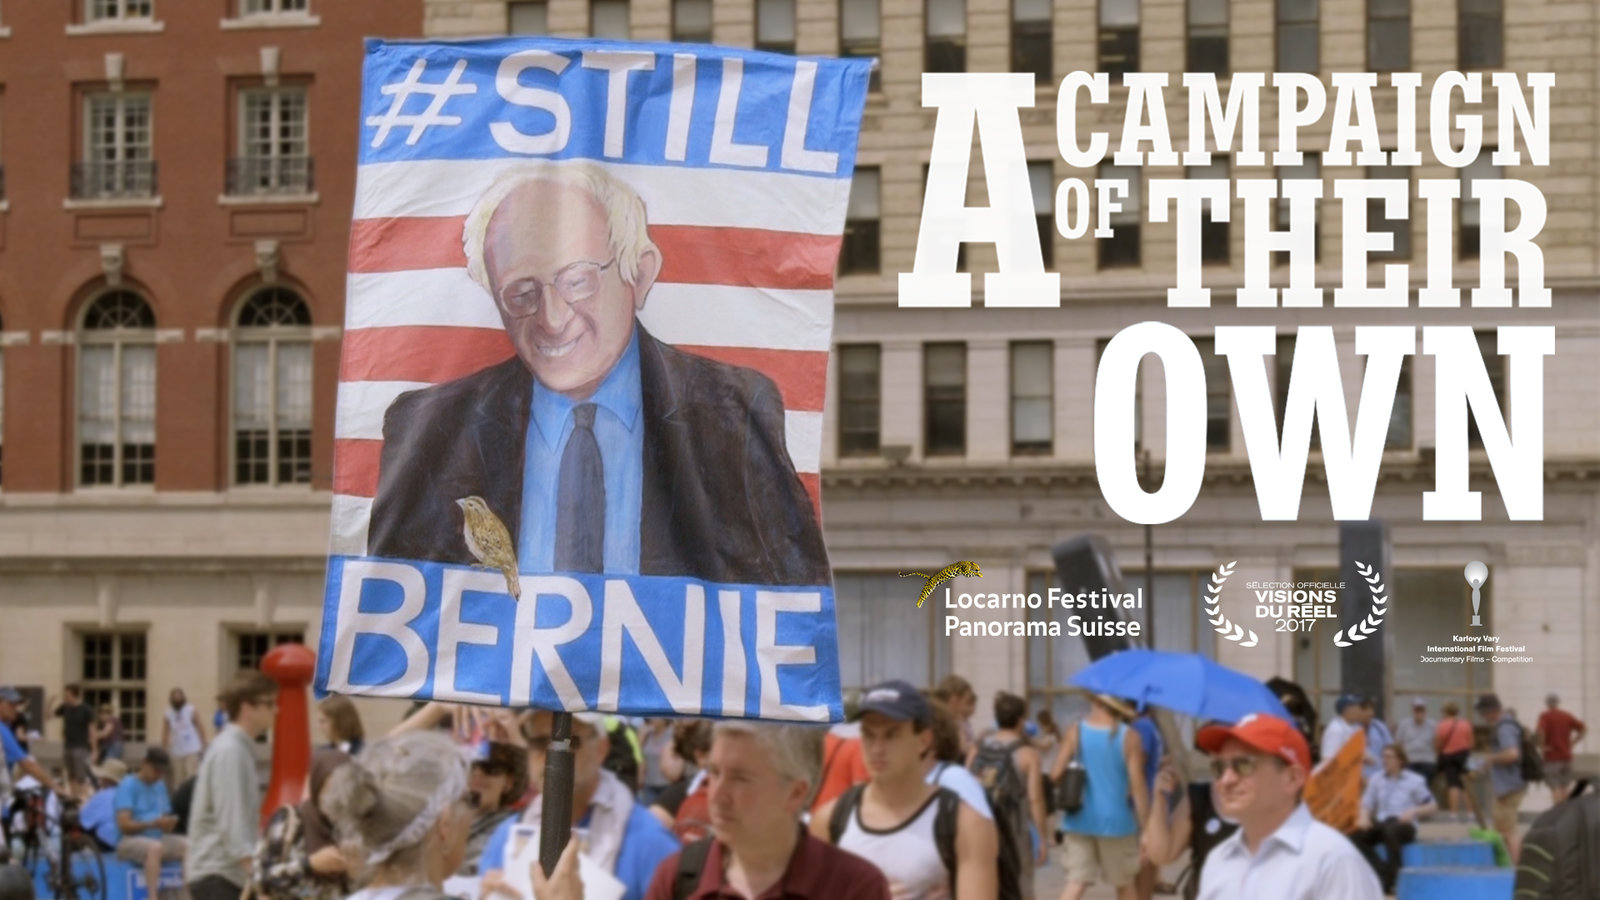 A Campaign of Their Own - The 2016 Presidential Campaign of Bernie Sanders